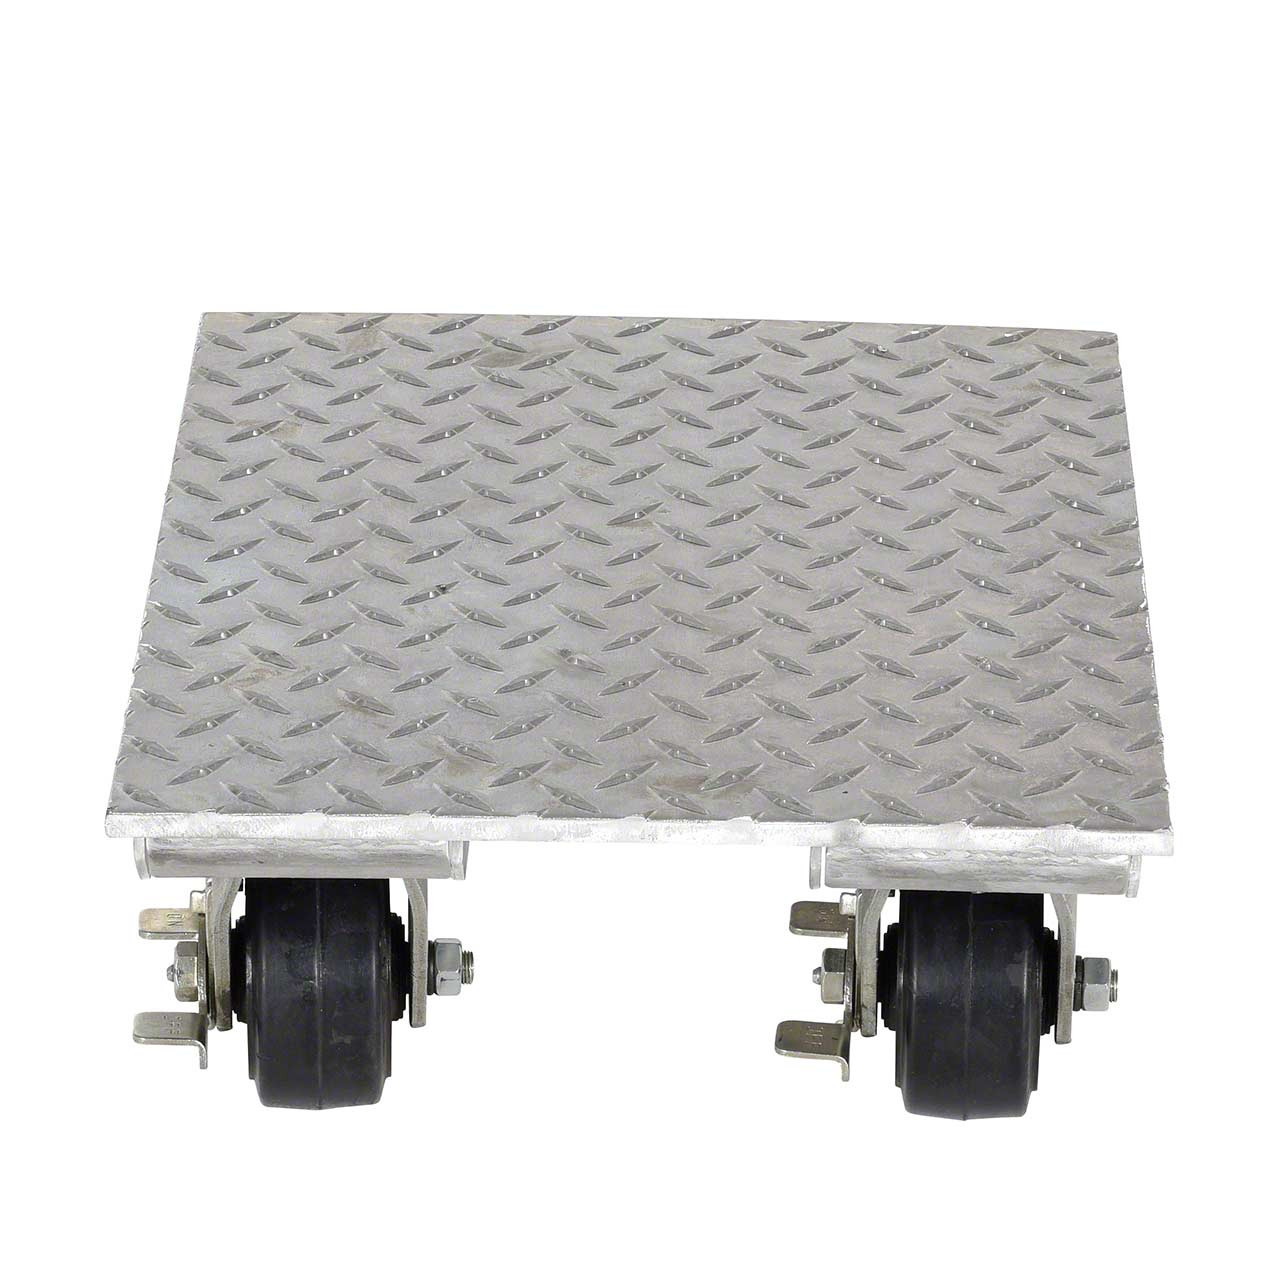 Aluminum Plate Dolly Front View